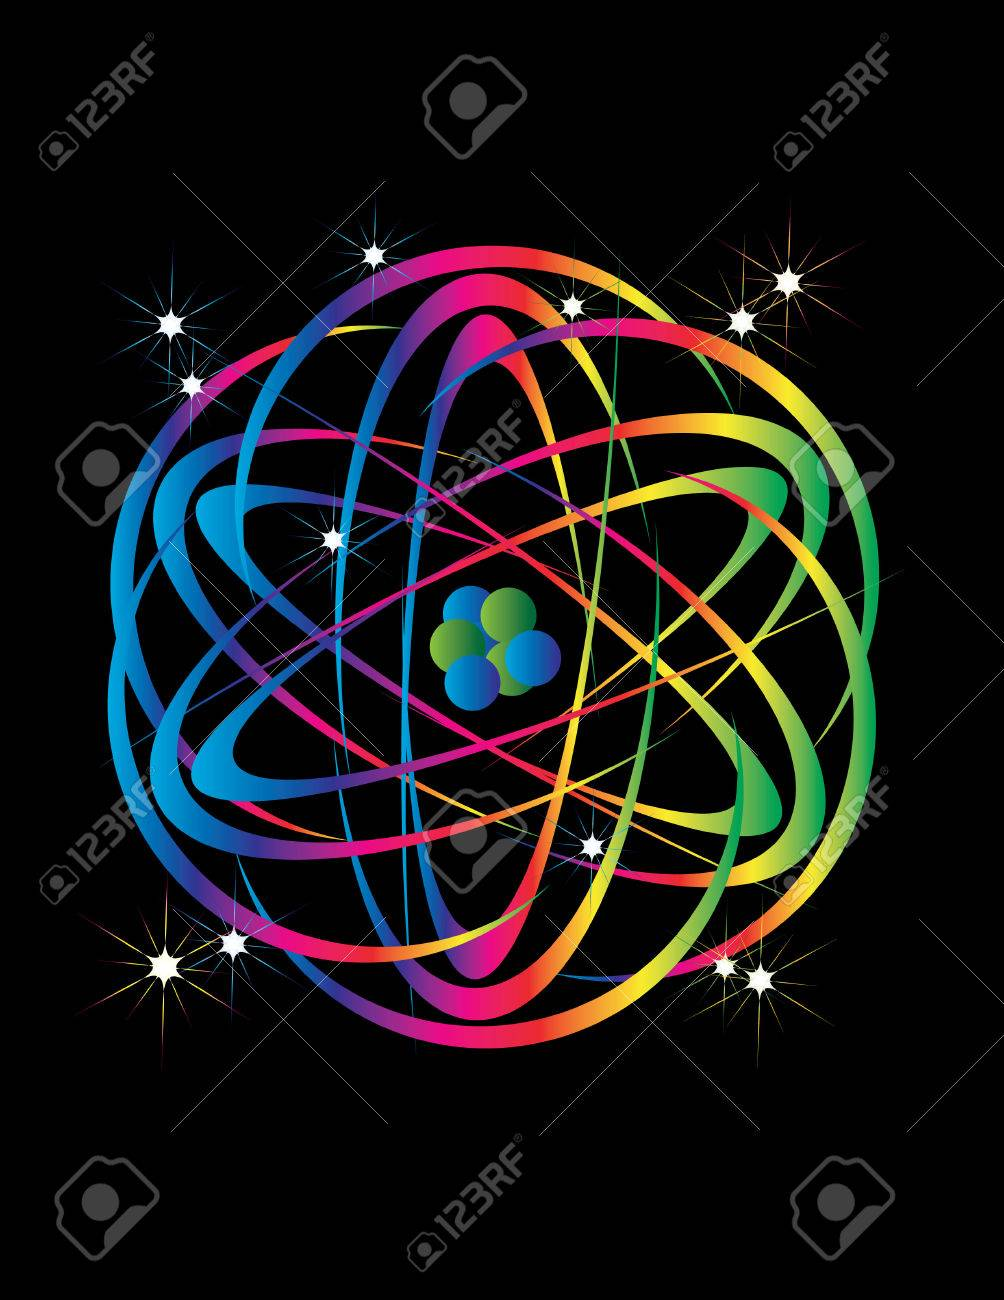 Atomic Energy Stock Vector - 5415297